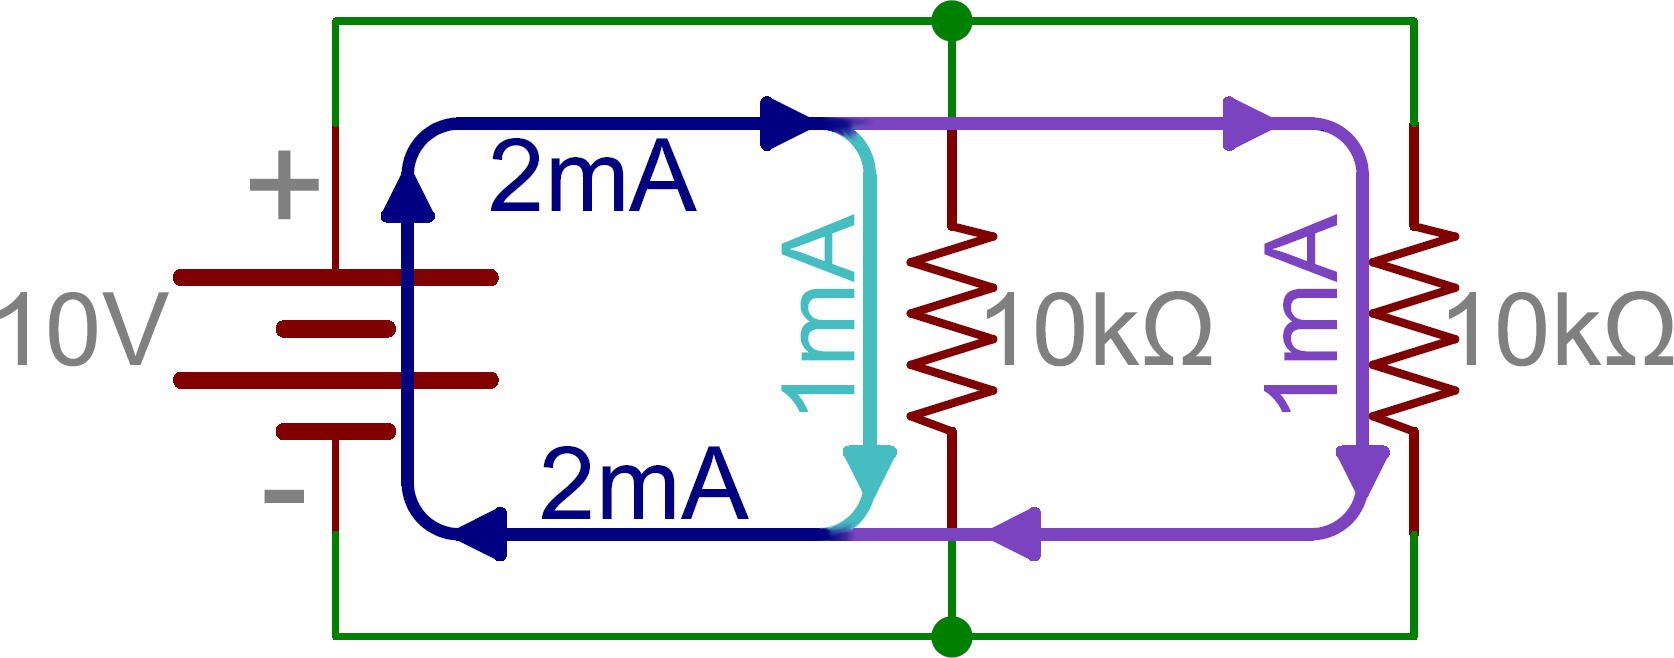 Series And Parallel Circuits Basic Circuit Schematic Two Resistors In With A Battery